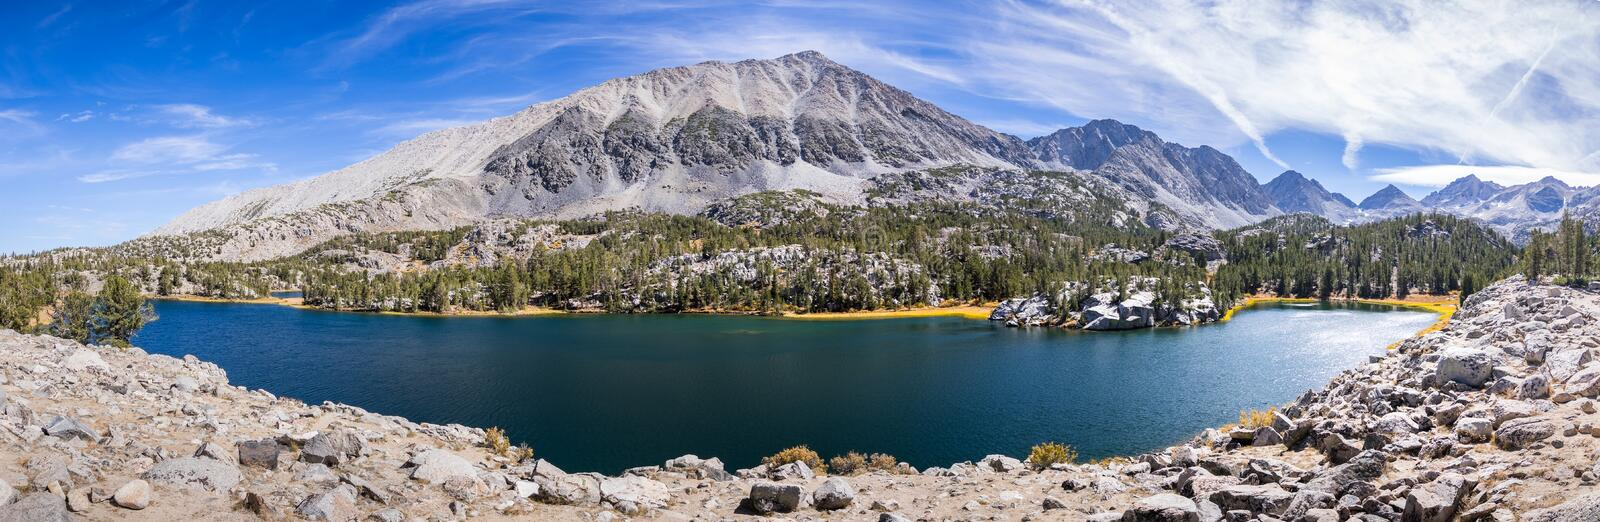 Panoramic view of alpine lake, Eastern Sierras stock image